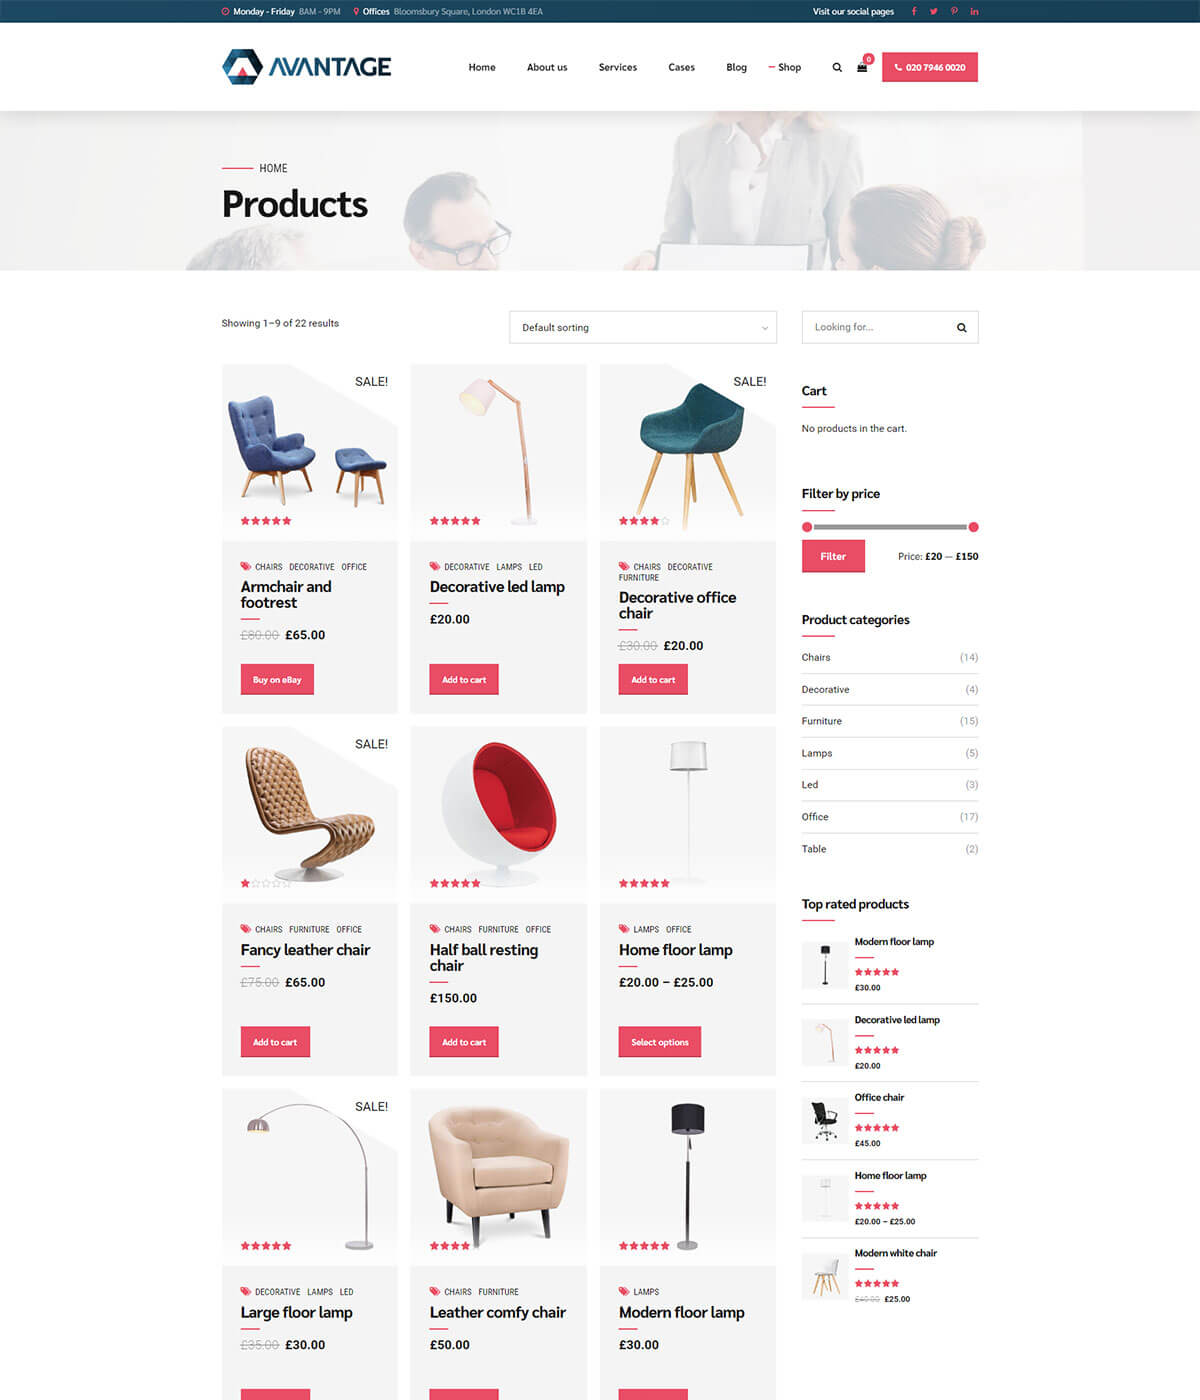 http://avantage.bold-themes.com/wp-content/uploads/2019/05/business-14-shop.jpg